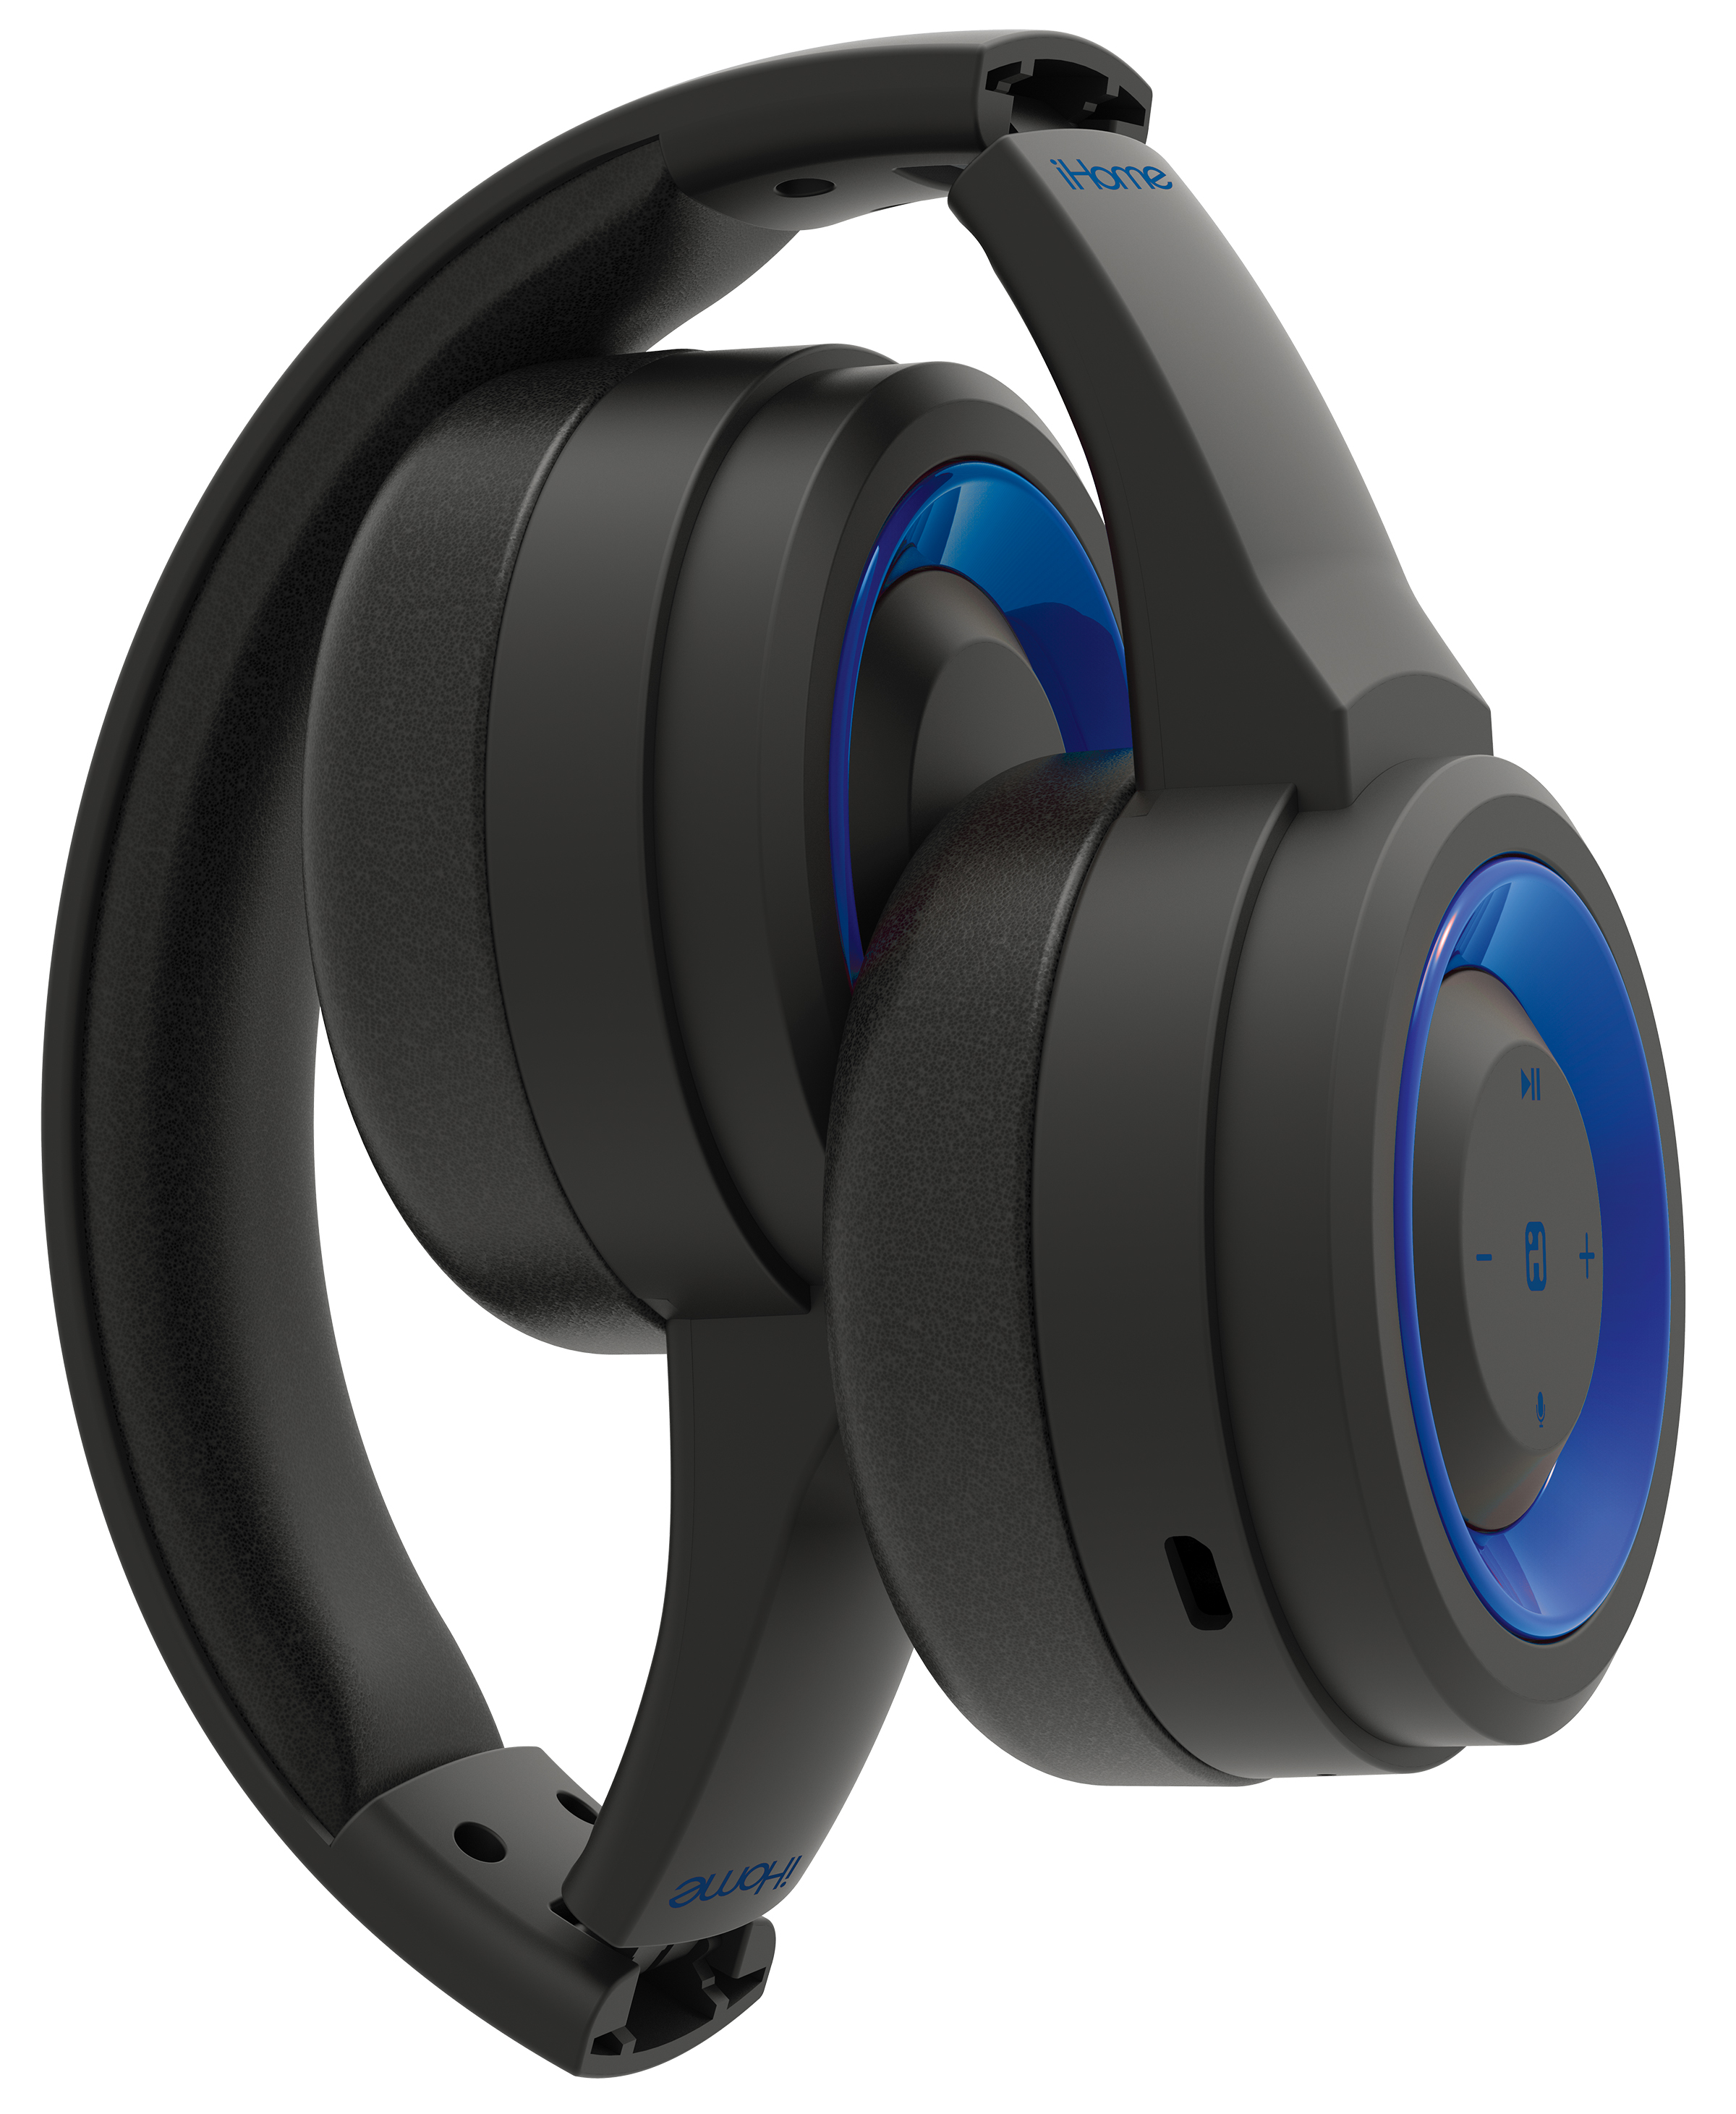 11840d466d2 iHome iB95 Sweat-proof Fold-able Bluetooth Wireless Headphones with Mic -  Walmart.com